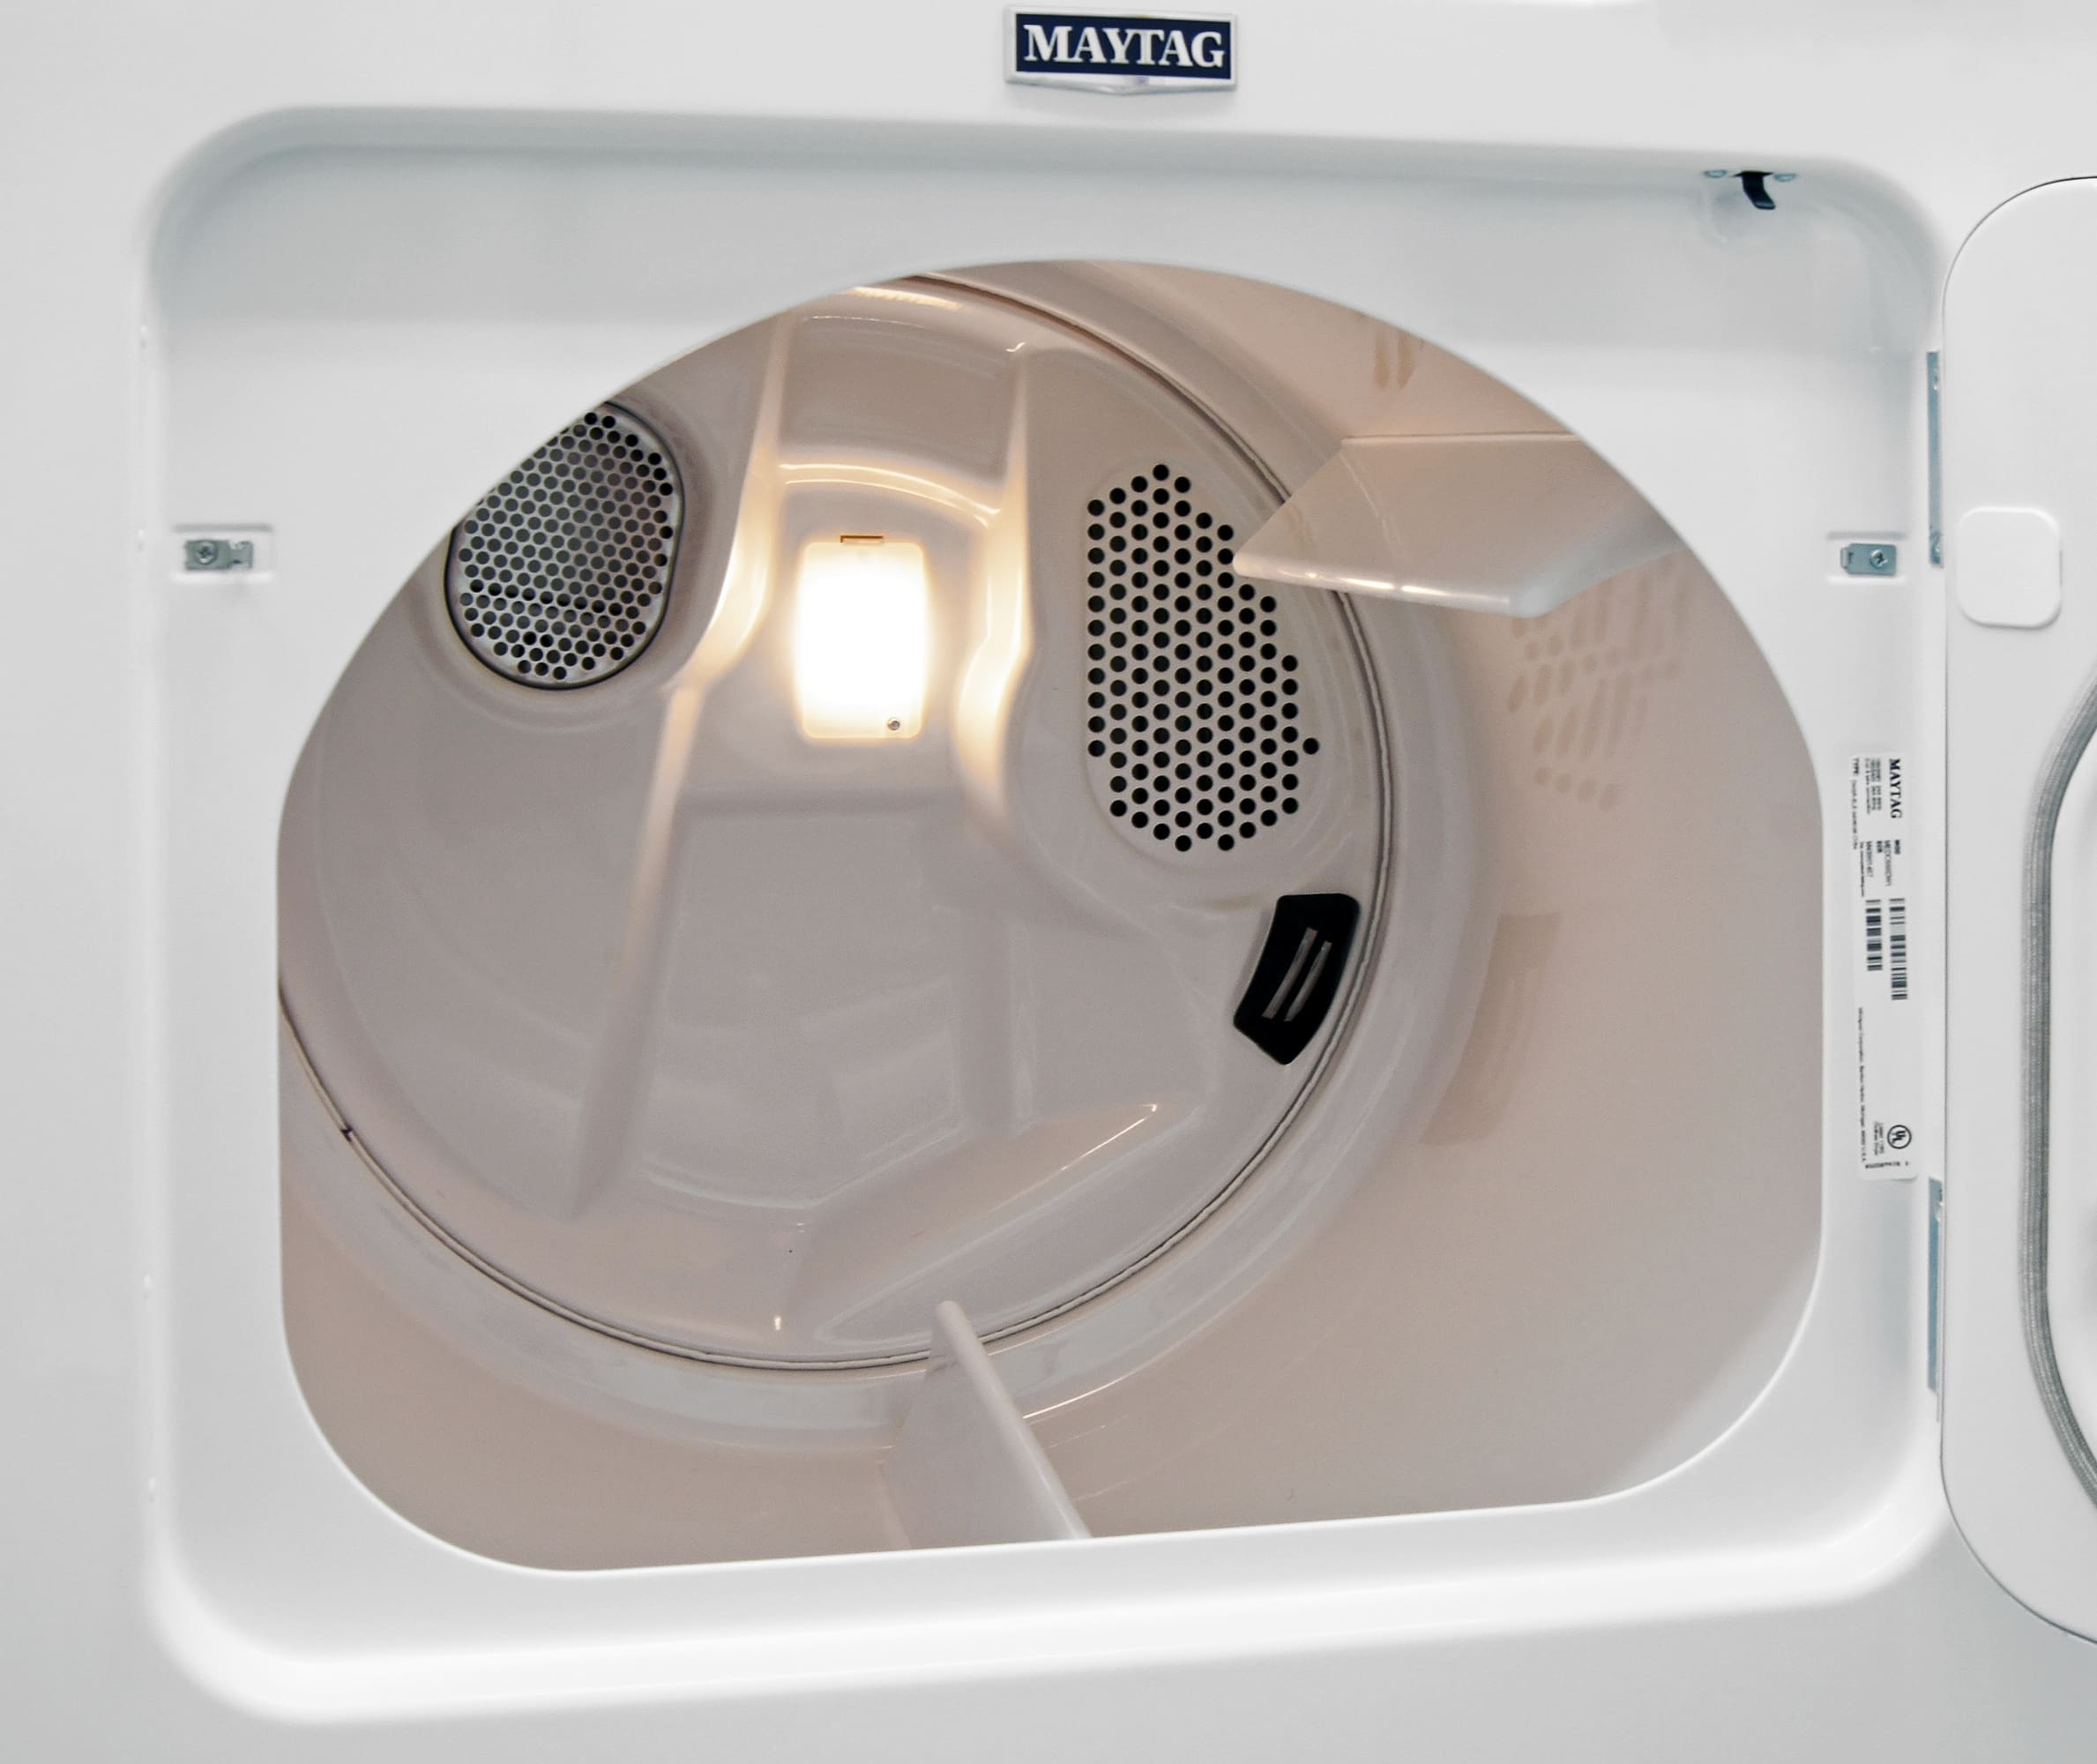 The Maytag Centennial MEDC555DW's white interior drum is quite spacious for a budget model.